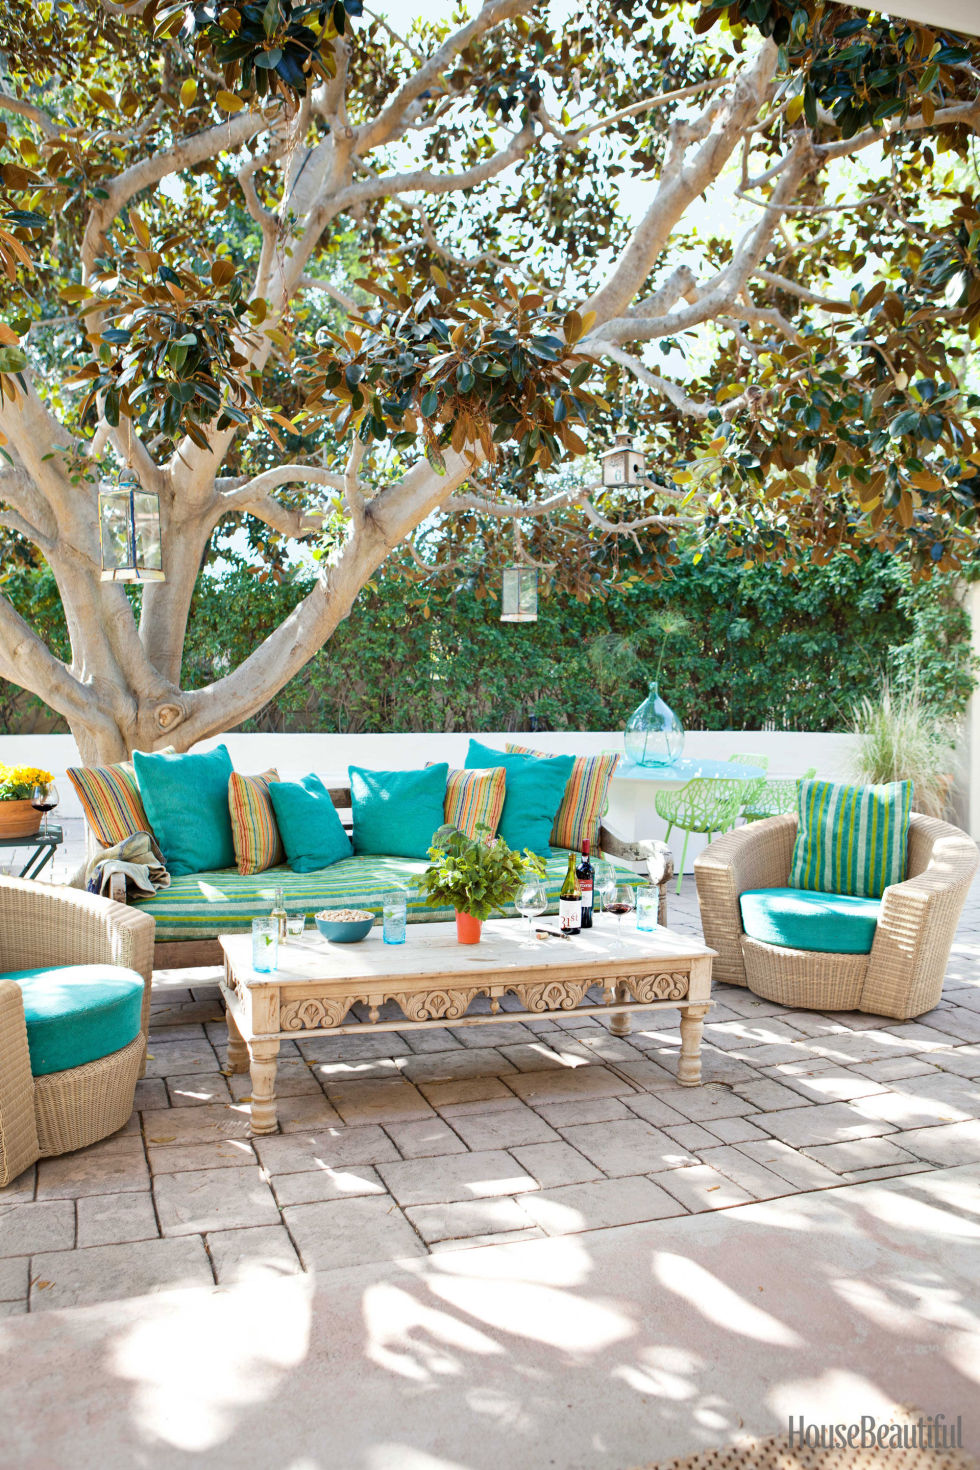 Backyard Furniture Ideas 25 best ideas about outdoor patio decorating on pinterest deck decorating outdoor deck decorating and backyard patio 85 Patio And Outdoor Room Design Ideas And Photos